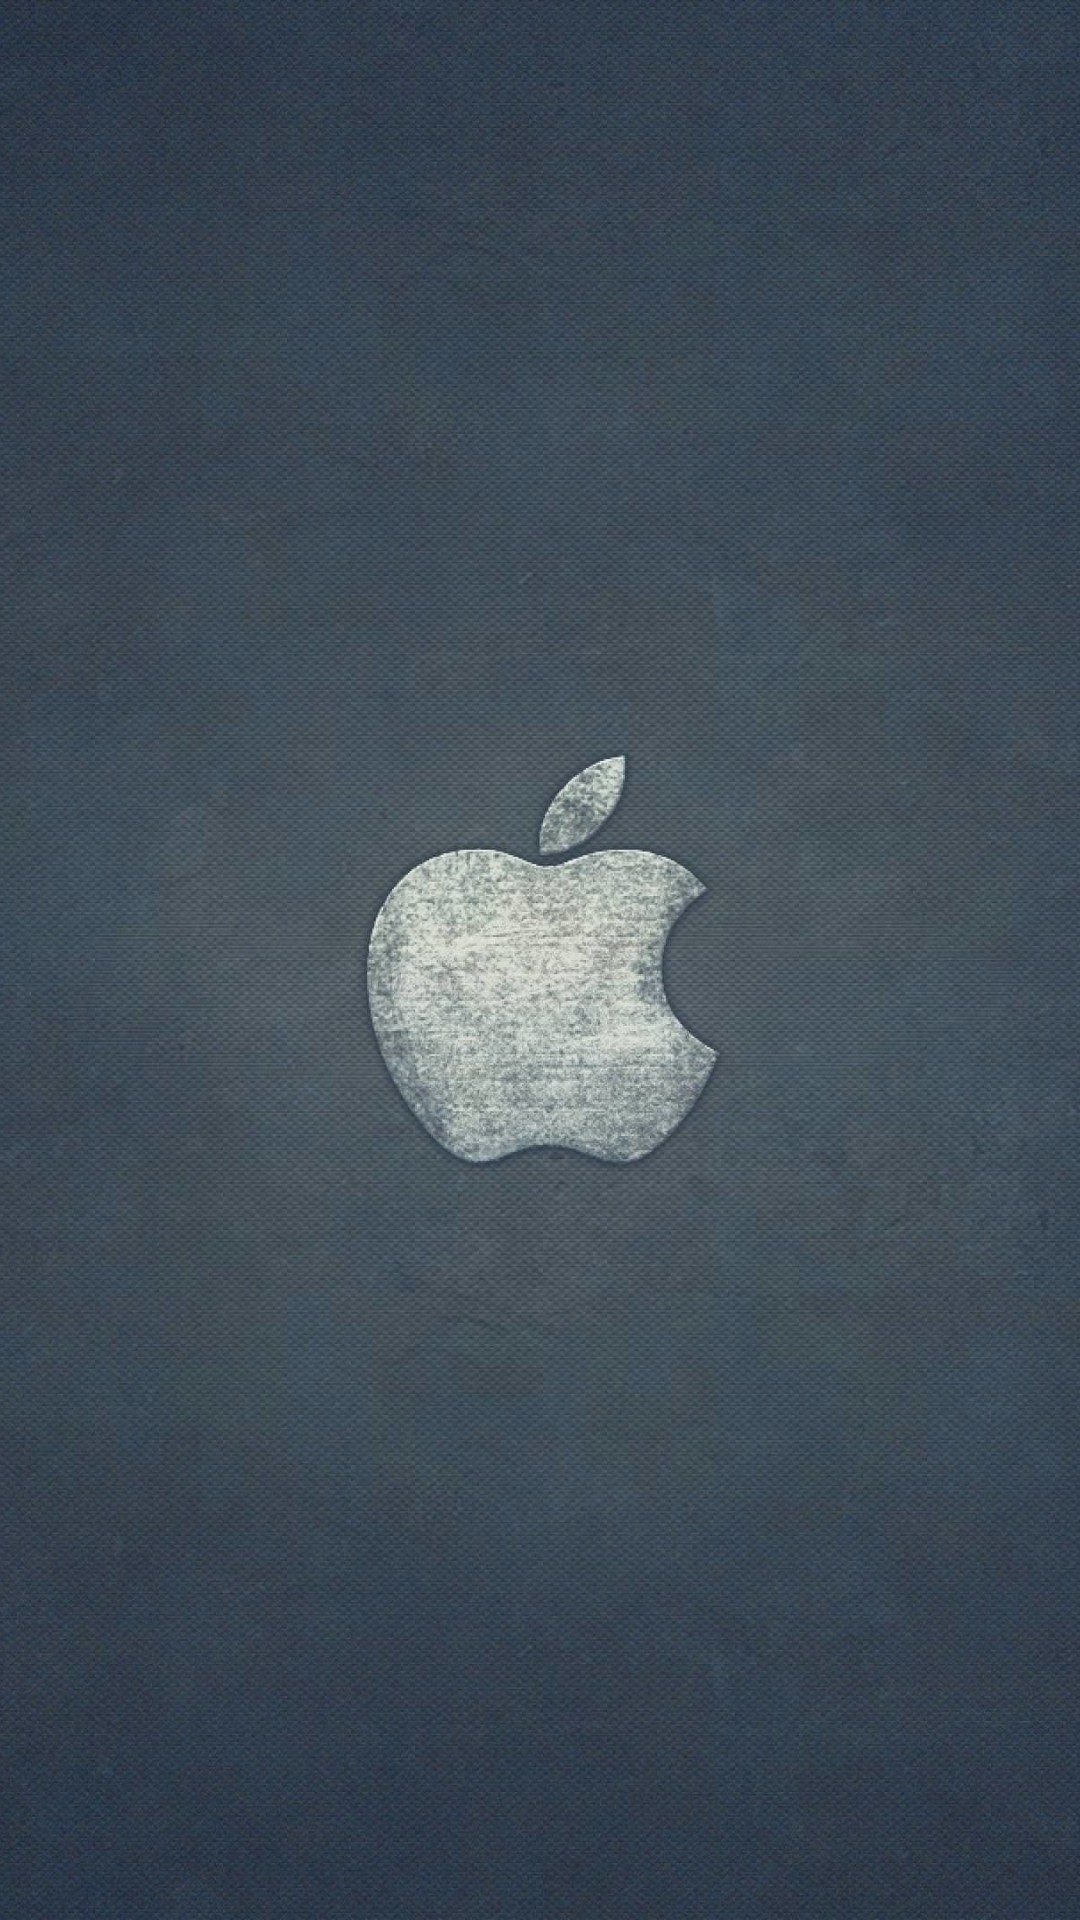 Grunge Apple Logo Wallpaper for SONY Xperia Z1